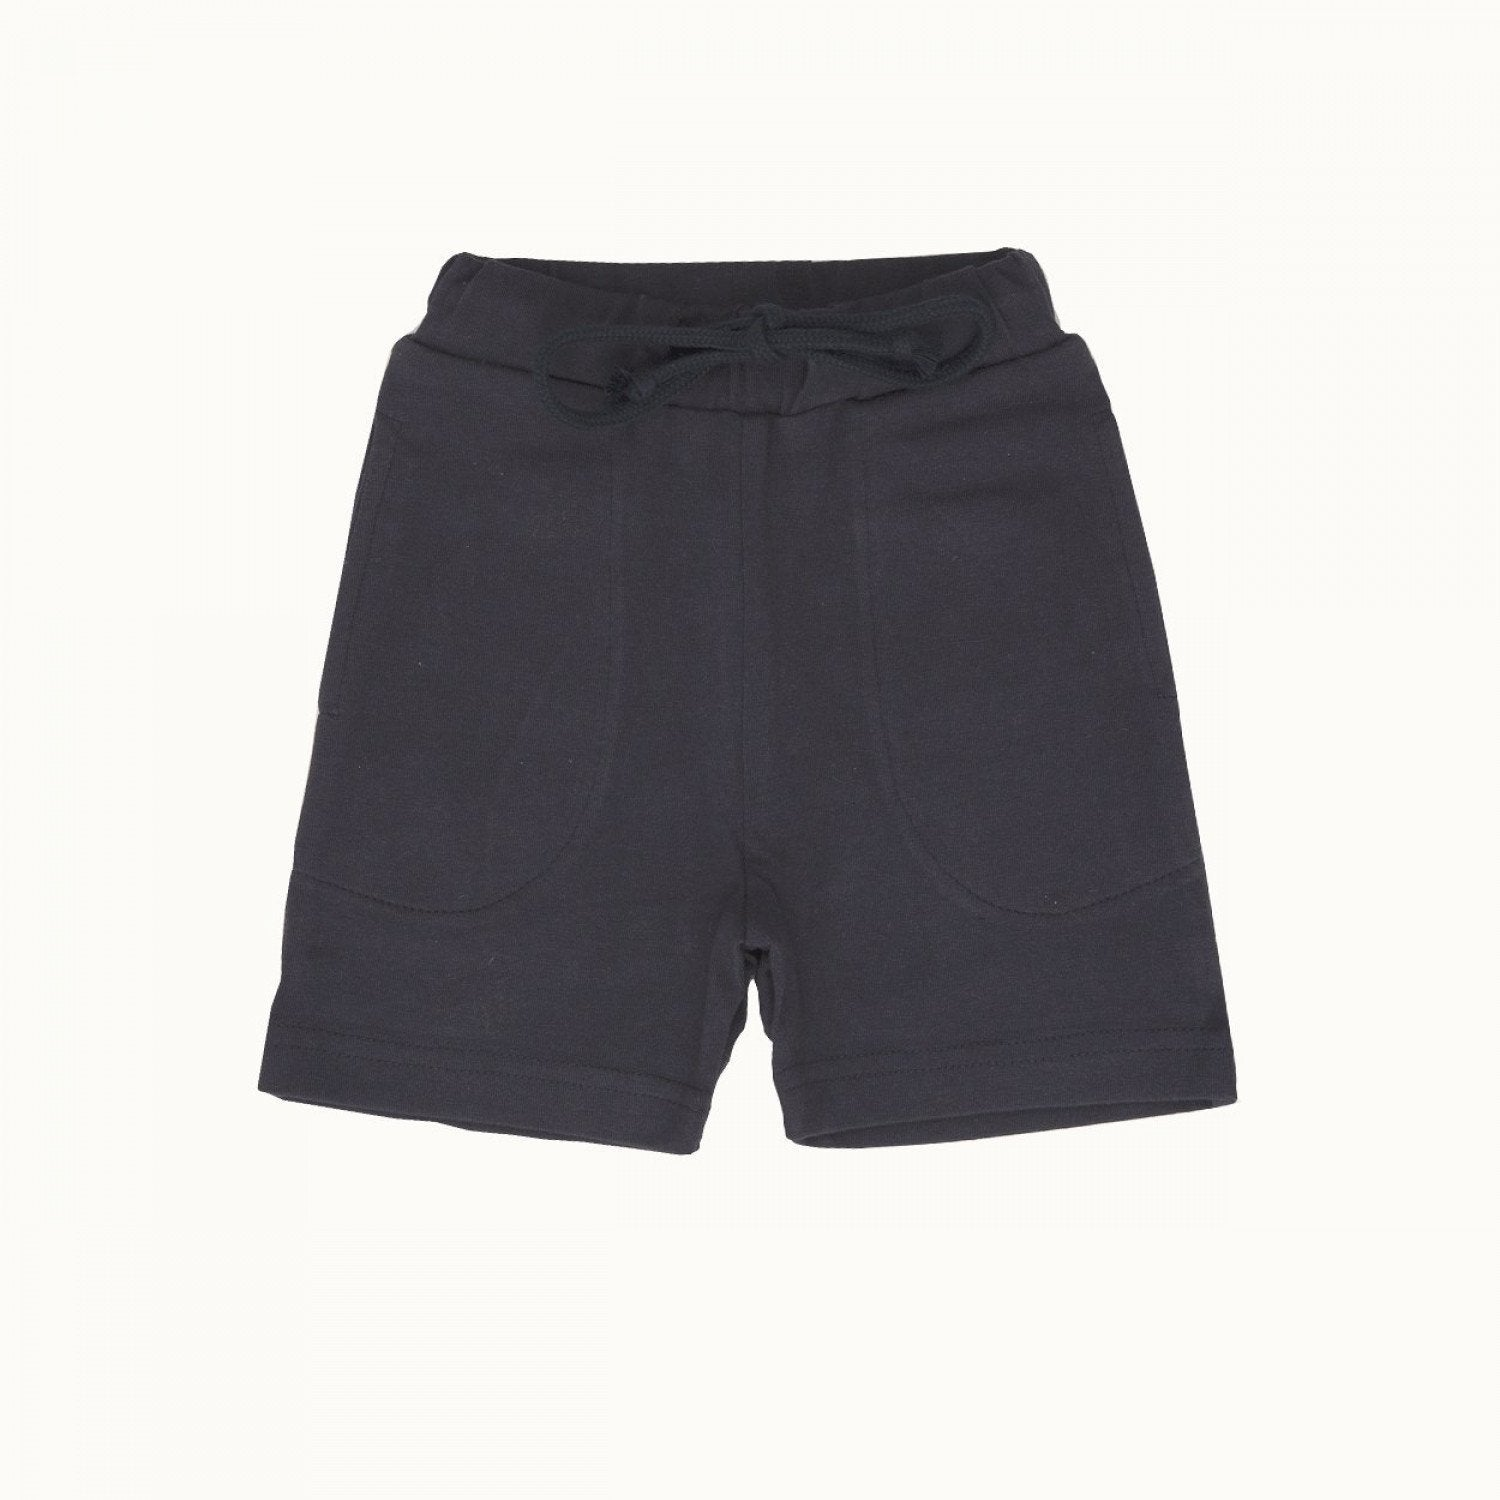 Navy / 1 Year Nature Baby Organic Cotton Jimmy Shorts (Multiple Variants) - Naked Baby Eco Boutique